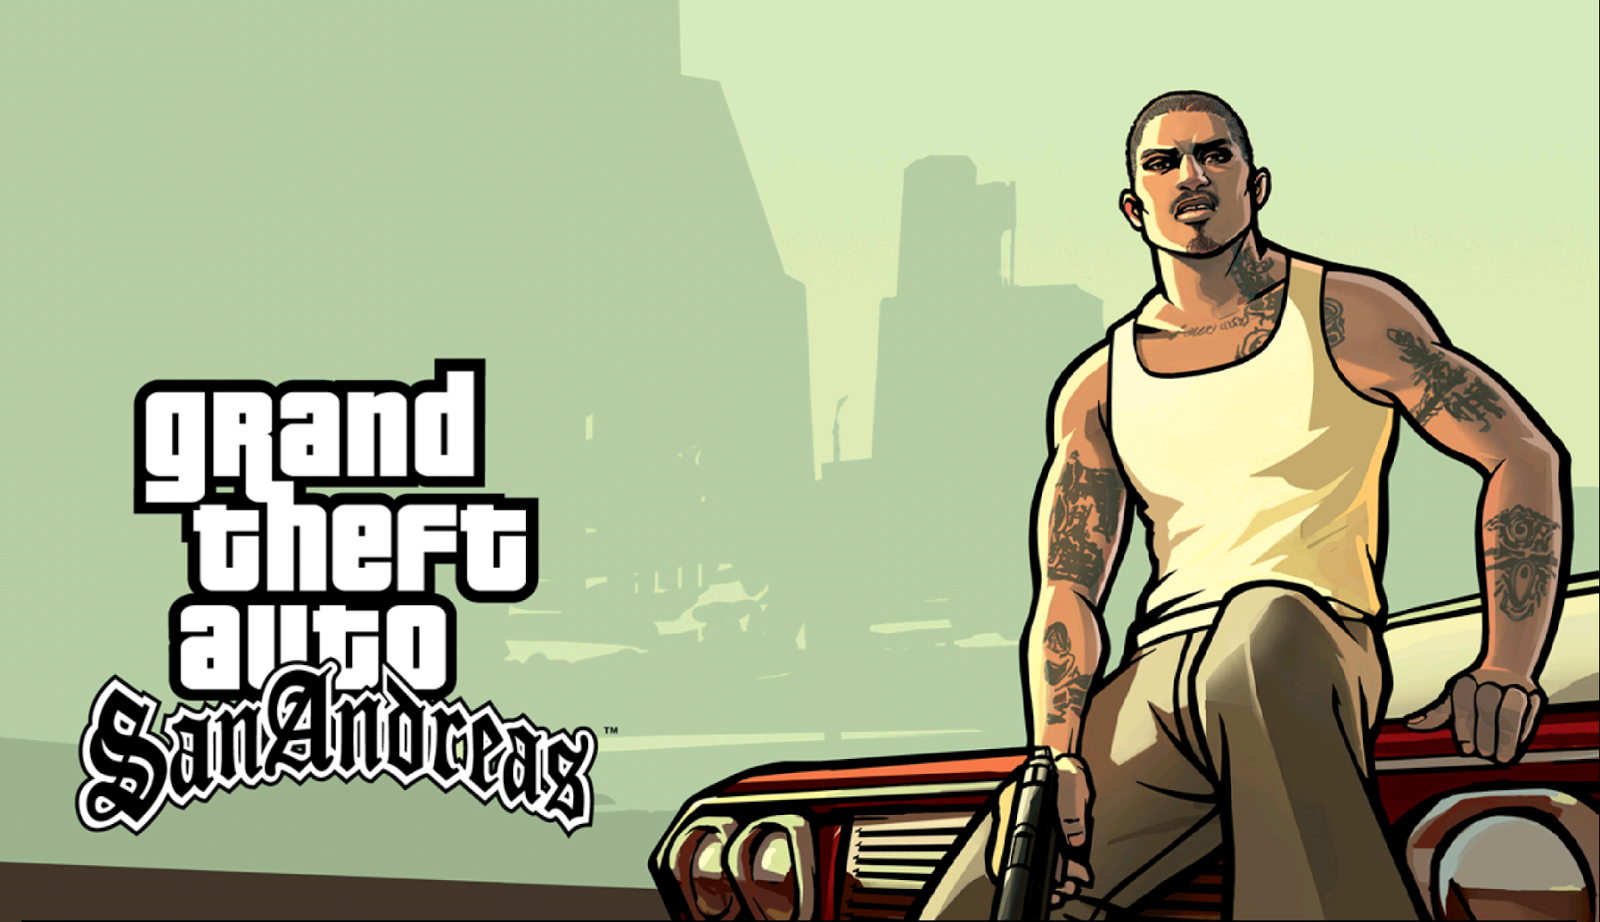 Grand Theft Auto: San Andreas v1.07 APK MOD